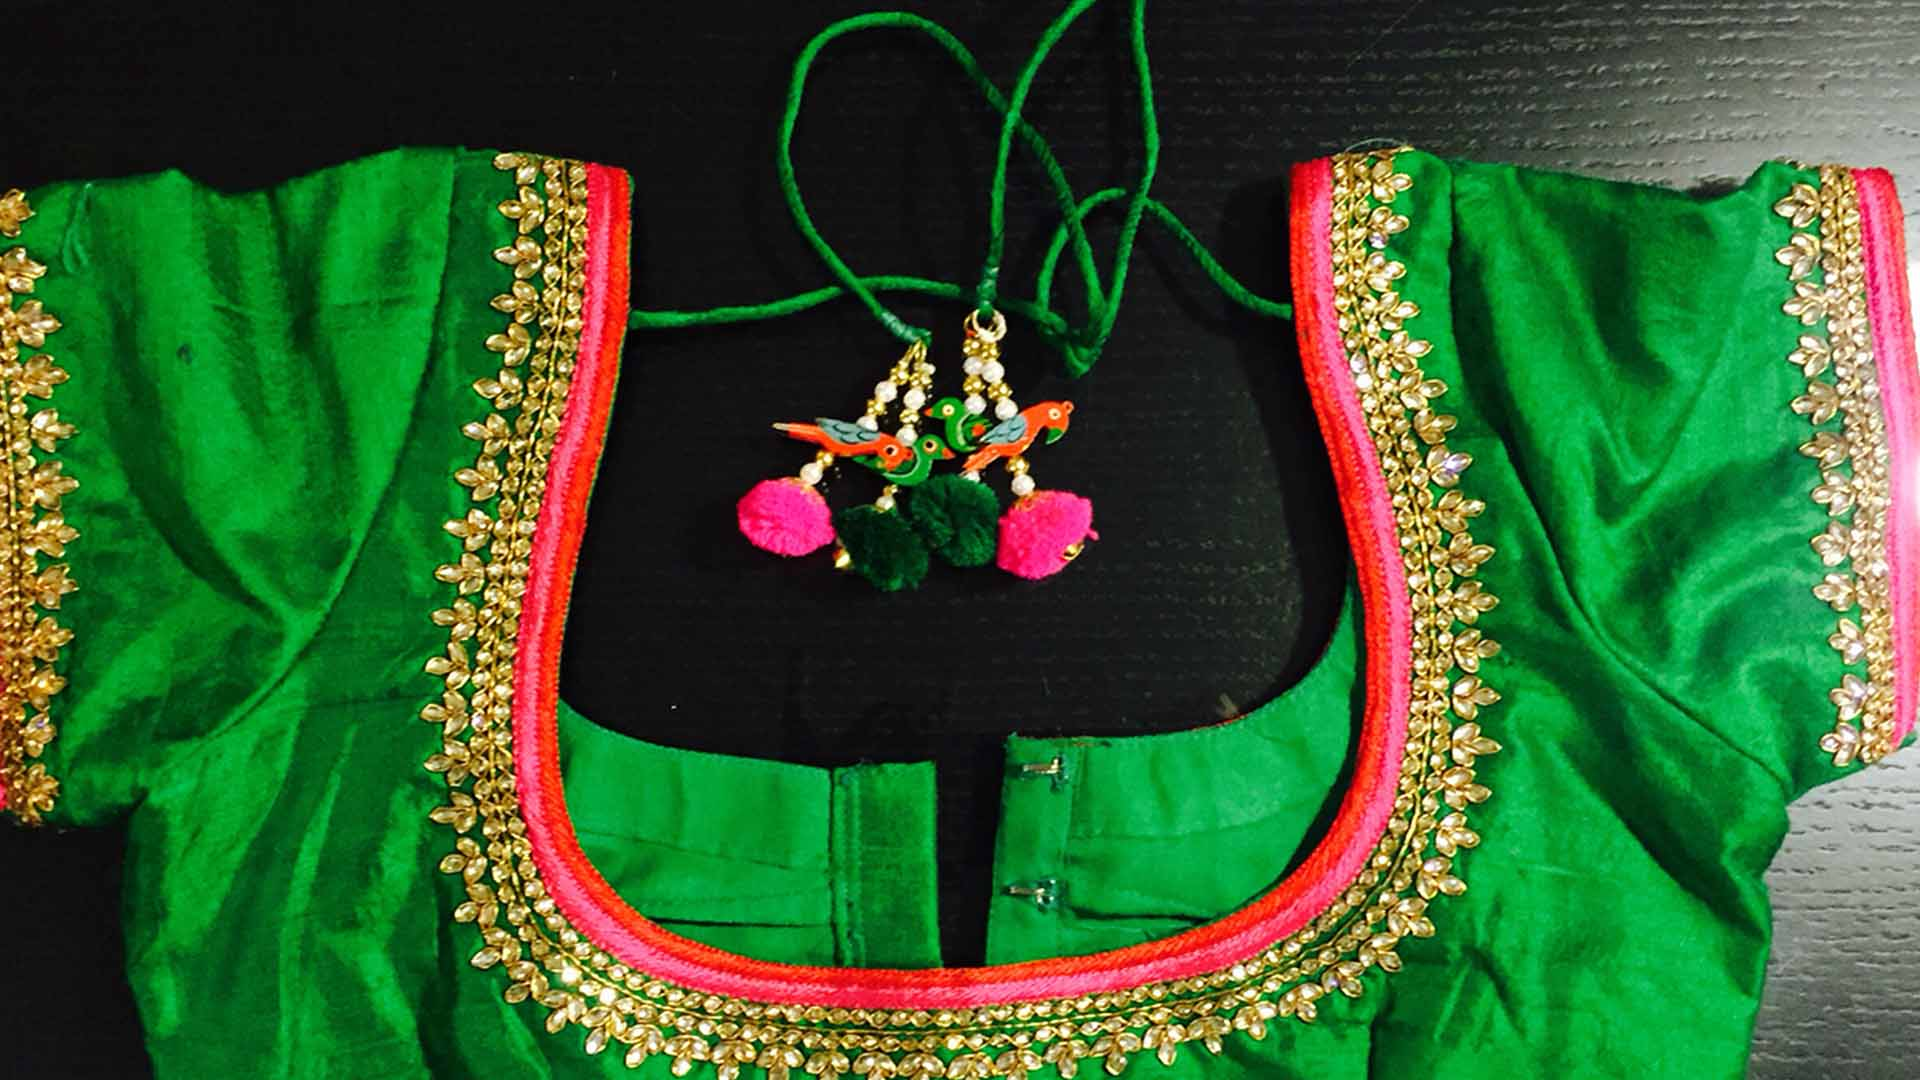 How To Make Simple Blouse Hanging Saree Blouse Ideas,Jamaican Toe Nail Designs